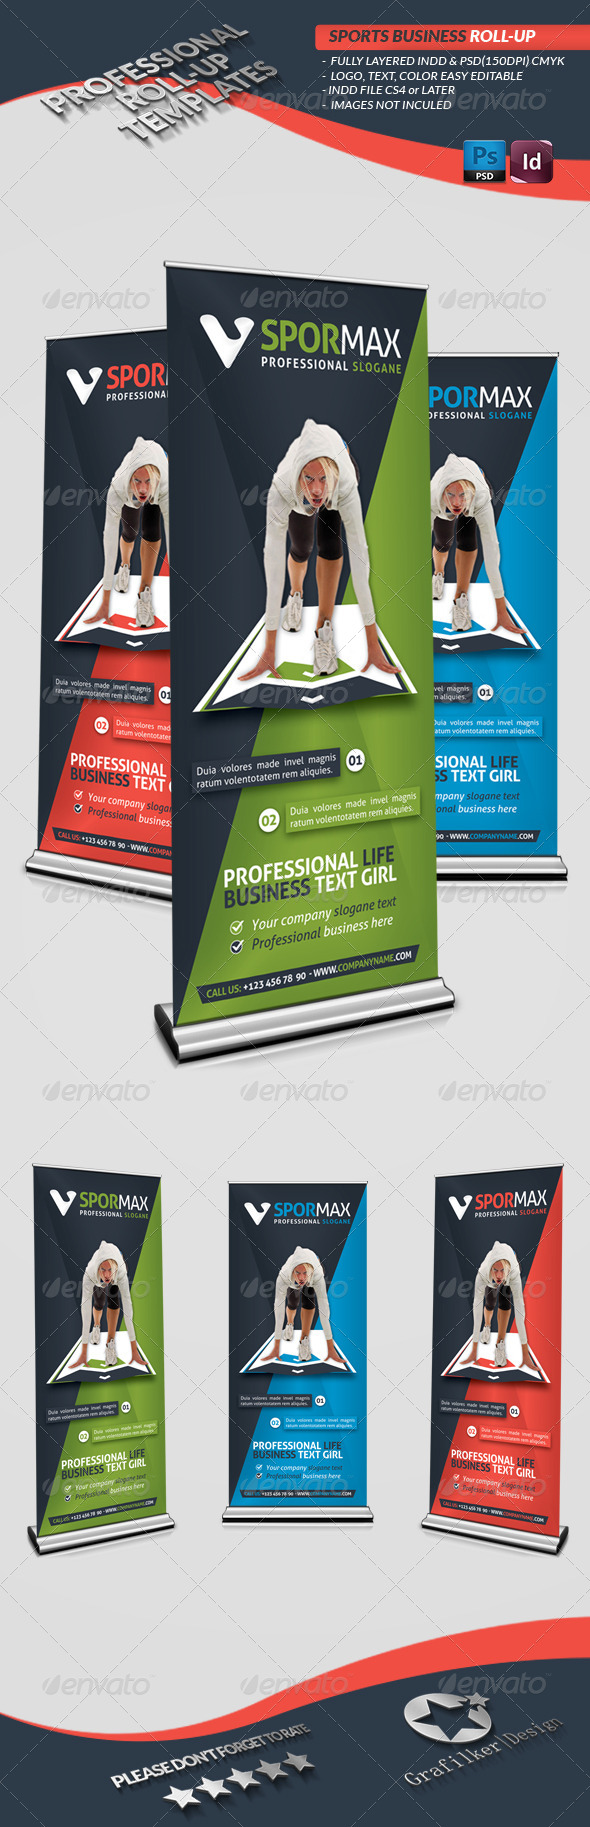 Sports Roll-Up Templates - Signage Print Templates